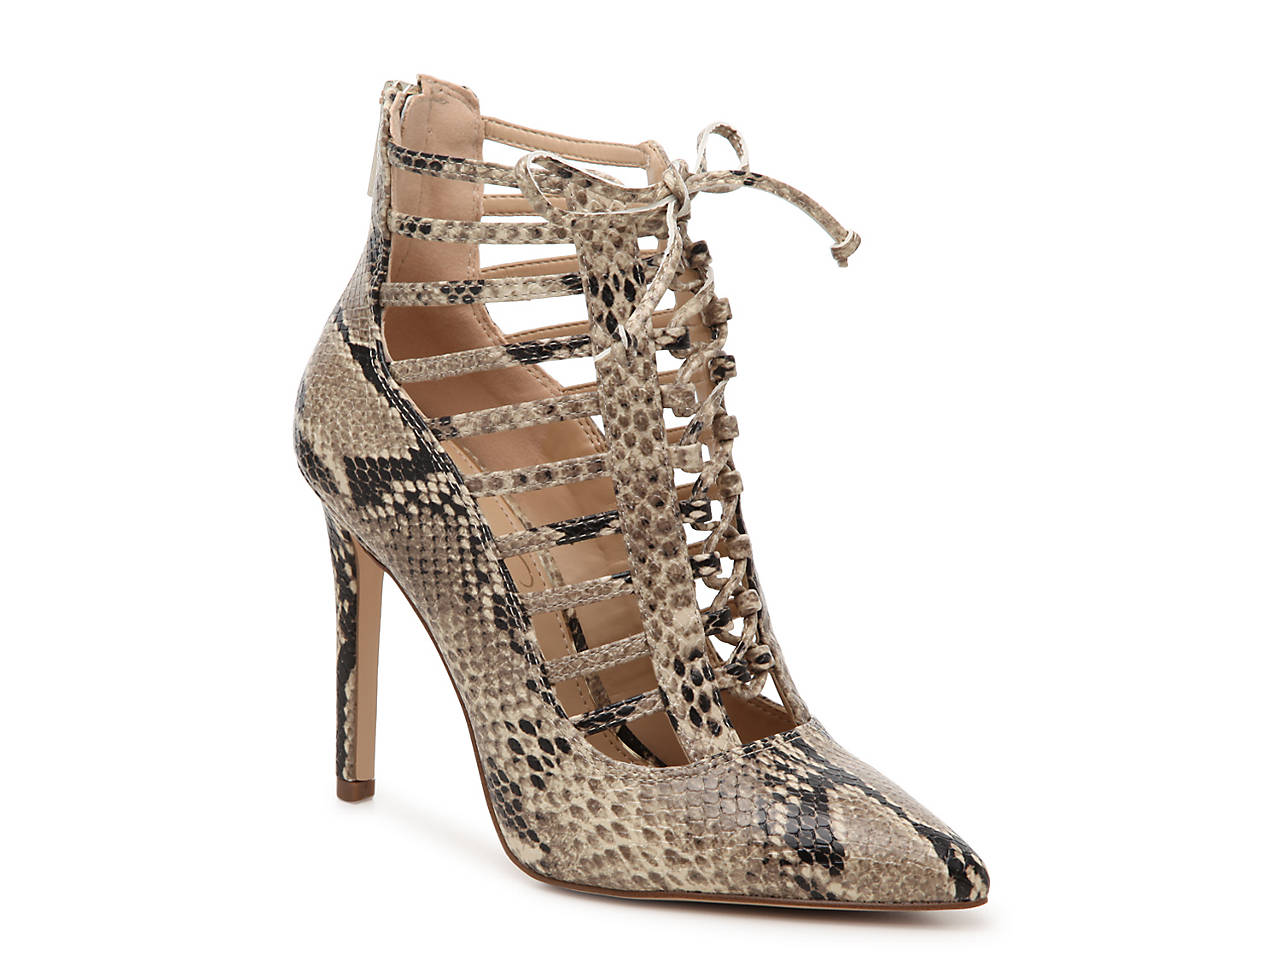 Luckita Pump by Jessica Simpson